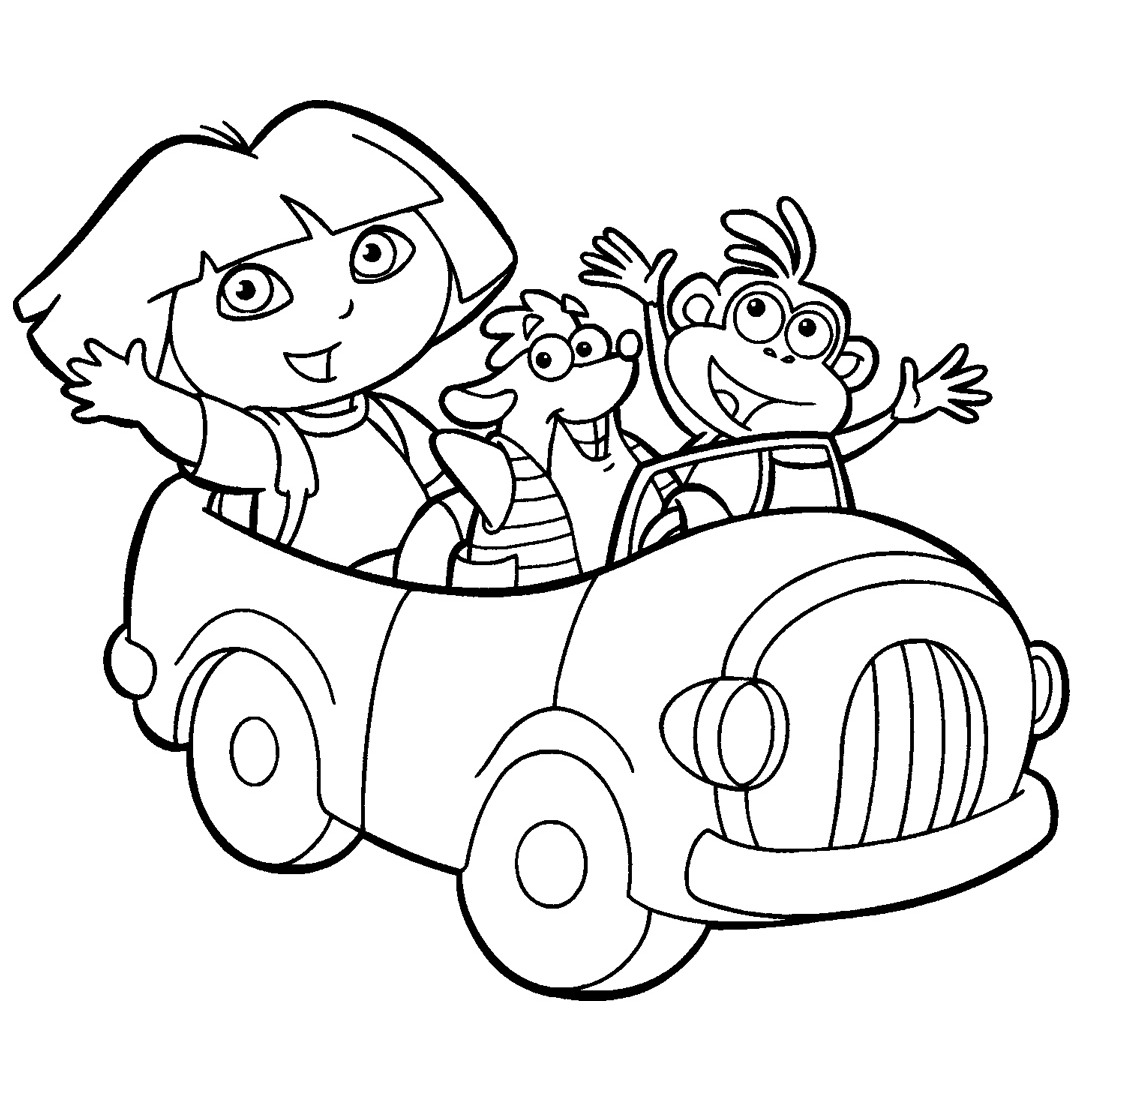 dora coloring pictures print download dora coloring pages to learn new things dora pictures coloring 1 1